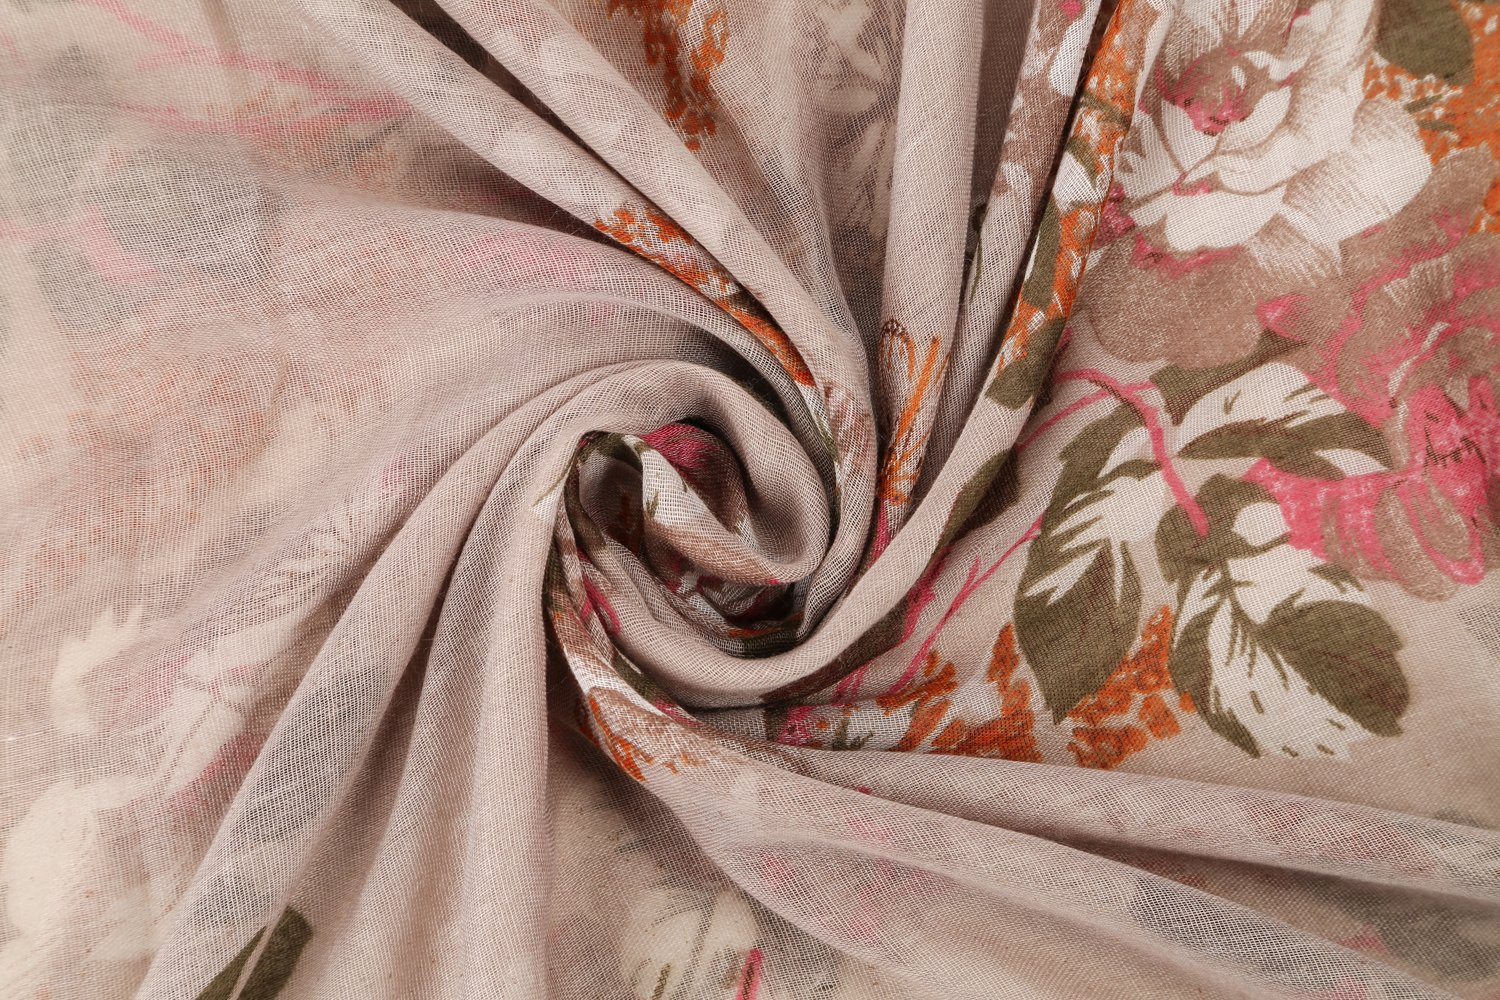 Infinity Scarfs for Women Loop Circle Fashion Scarf Floral Print Lightweight Scarves by RIIQIICHY (Image #4)